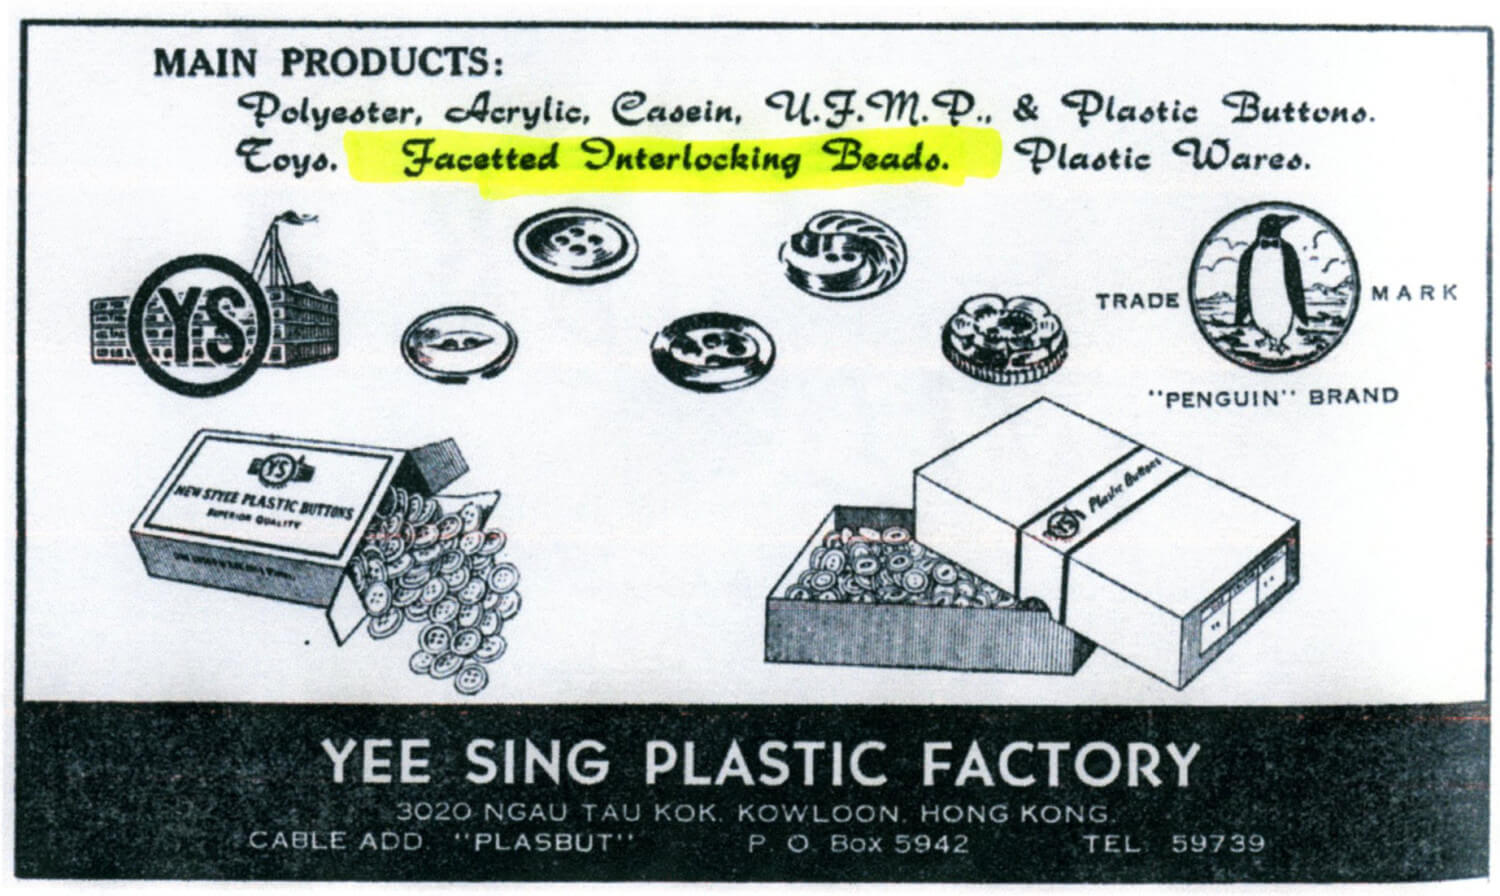 Yee Sing Plastic Factory Bead making company advert-1957